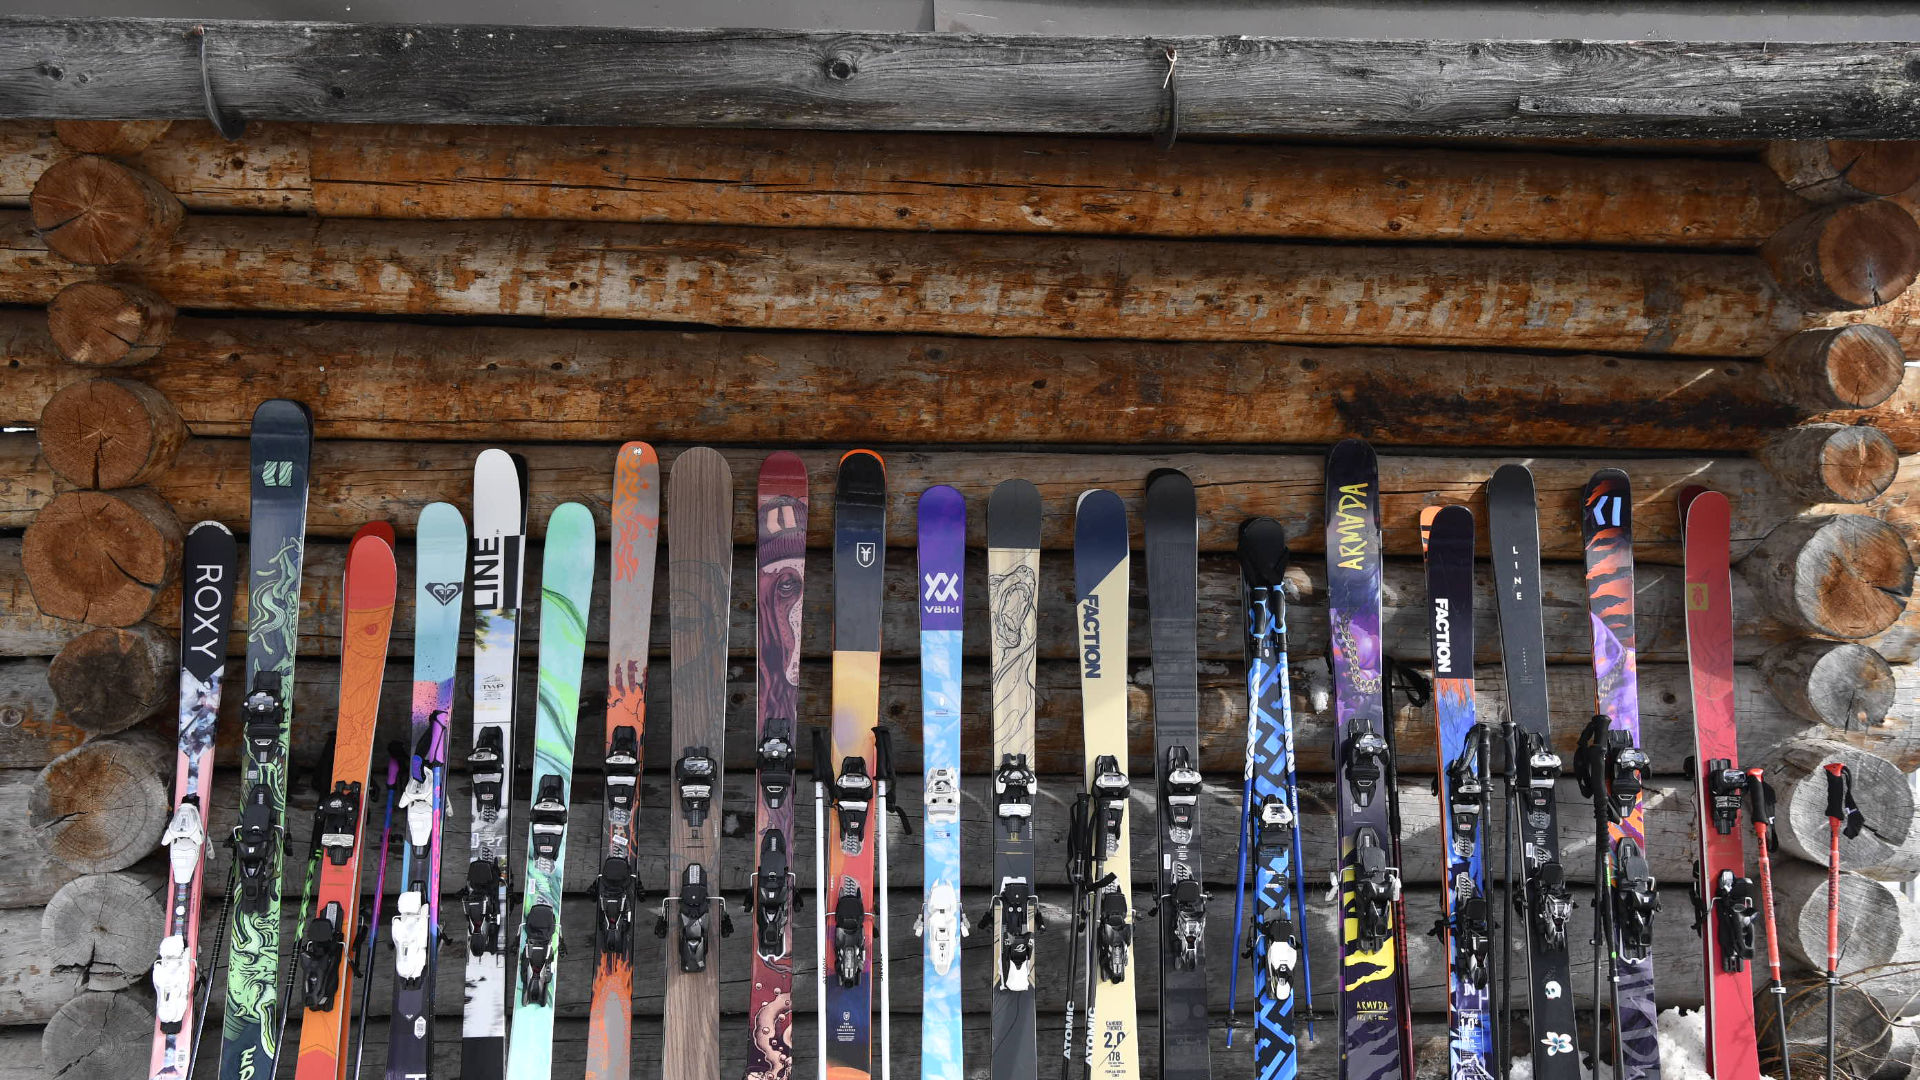 Variety of different skis against a wooden wall